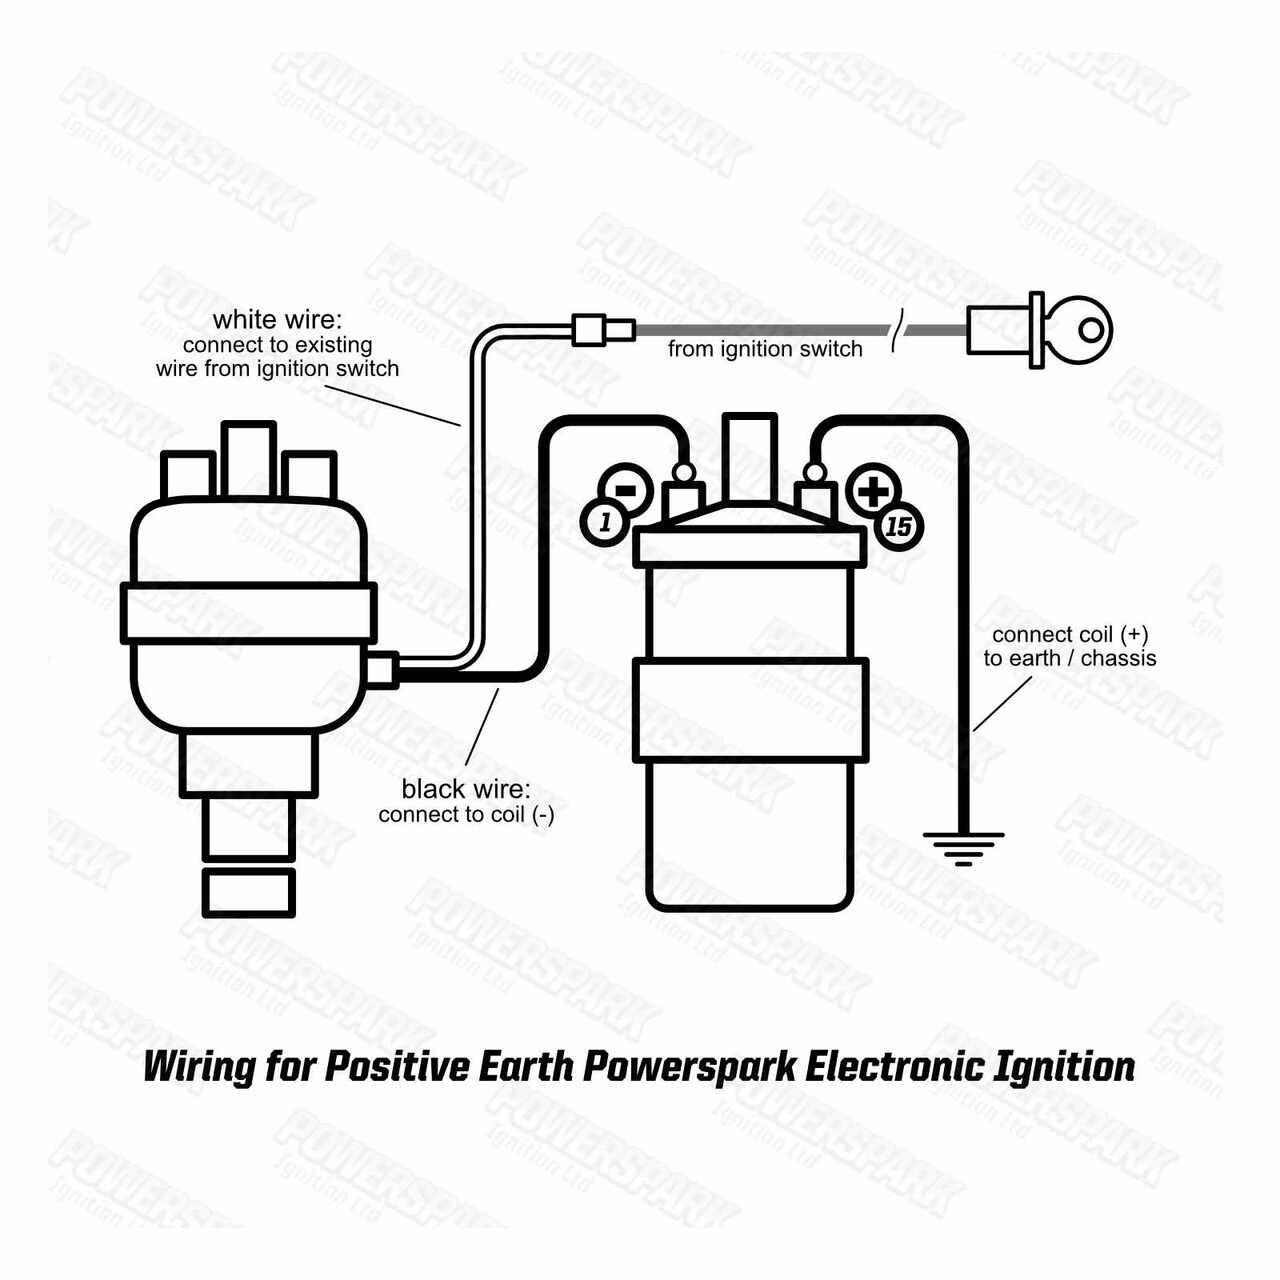 Powerspark Powerspark Electronic Ignition Kit for Lucas 45D, 43D, 59D Distributor Positive Earth K4pp and R2